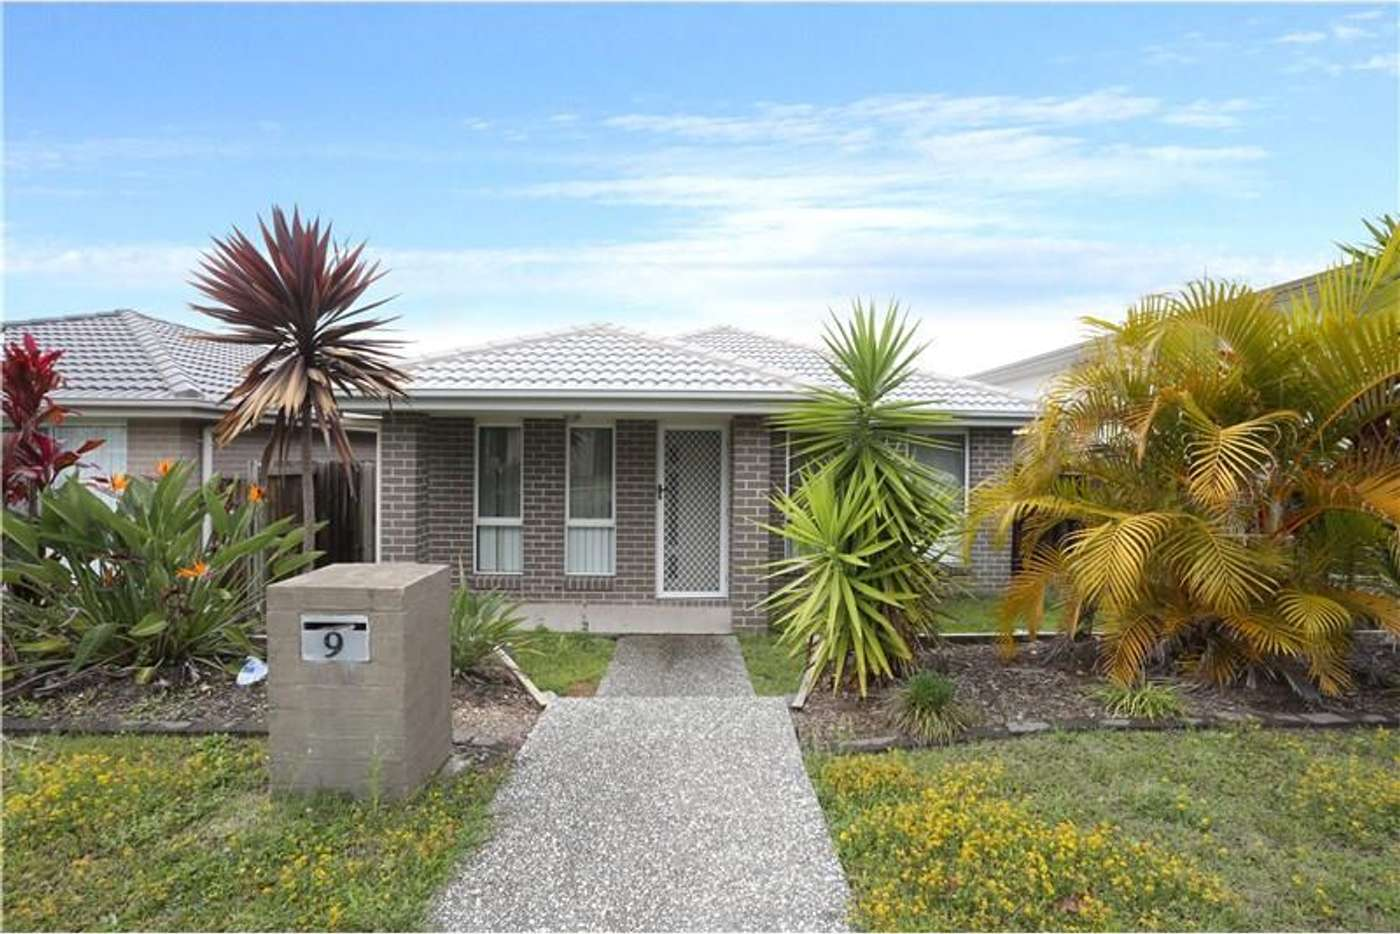 Main view of Homely house listing, 9 Carnarvon Court, Pimpama QLD 4209